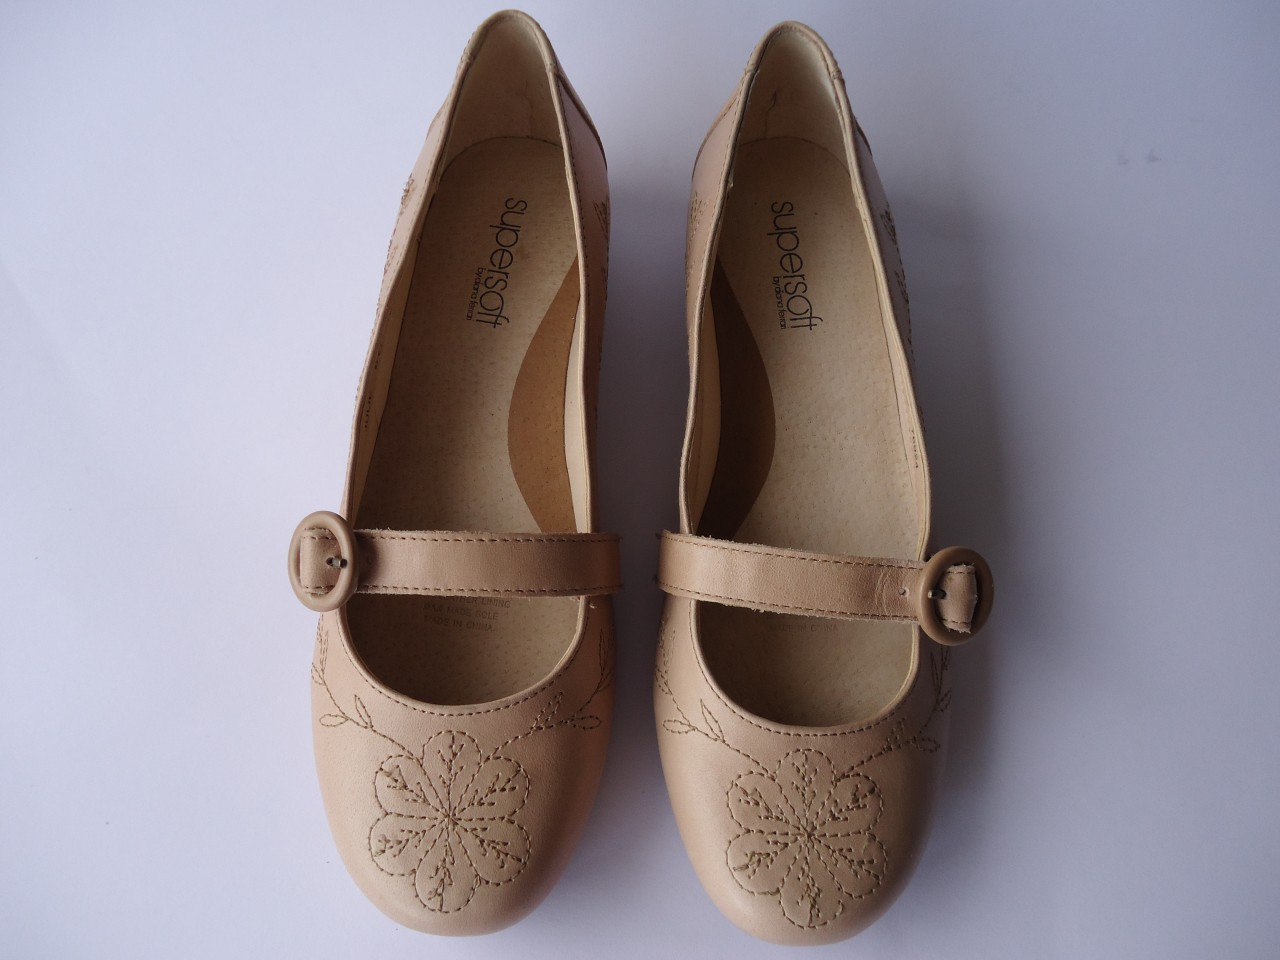 New-Ladies-Women-Leather-Shoe-Flat-Supersoft-Diana-Ferrari-Natural-Size-10-11-12